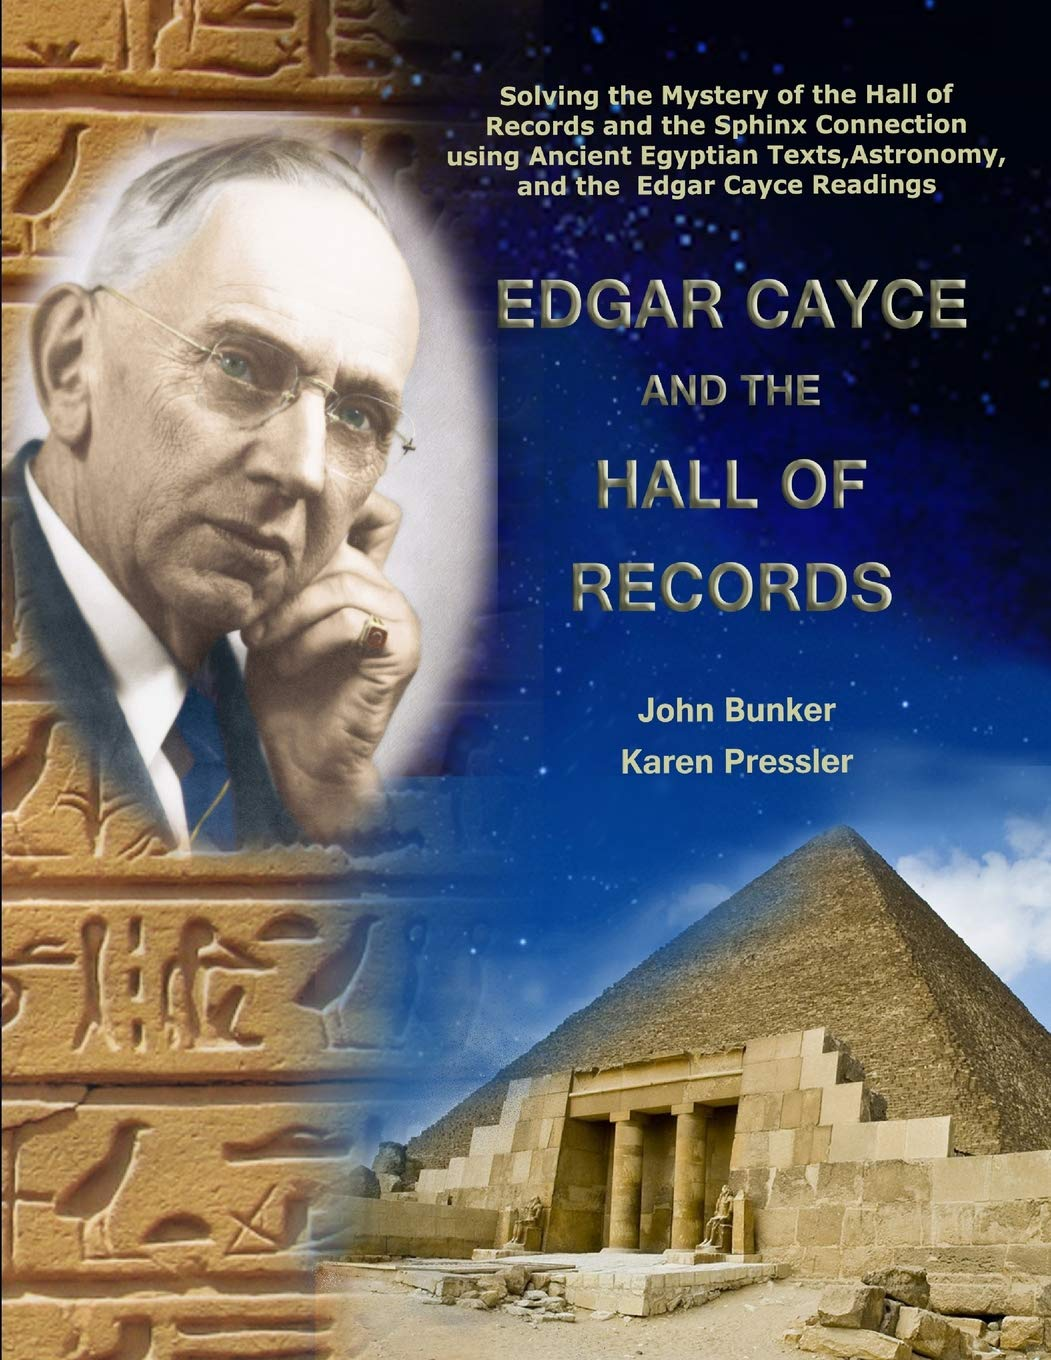 Edgar Cayce and the Hall of Records: Solving the Mystery of the Hall Of Records and the Sphinx Connection using Ancient Egyptian Texts, Astronomy, and the Edgar Cayce Readings : Bunker, John